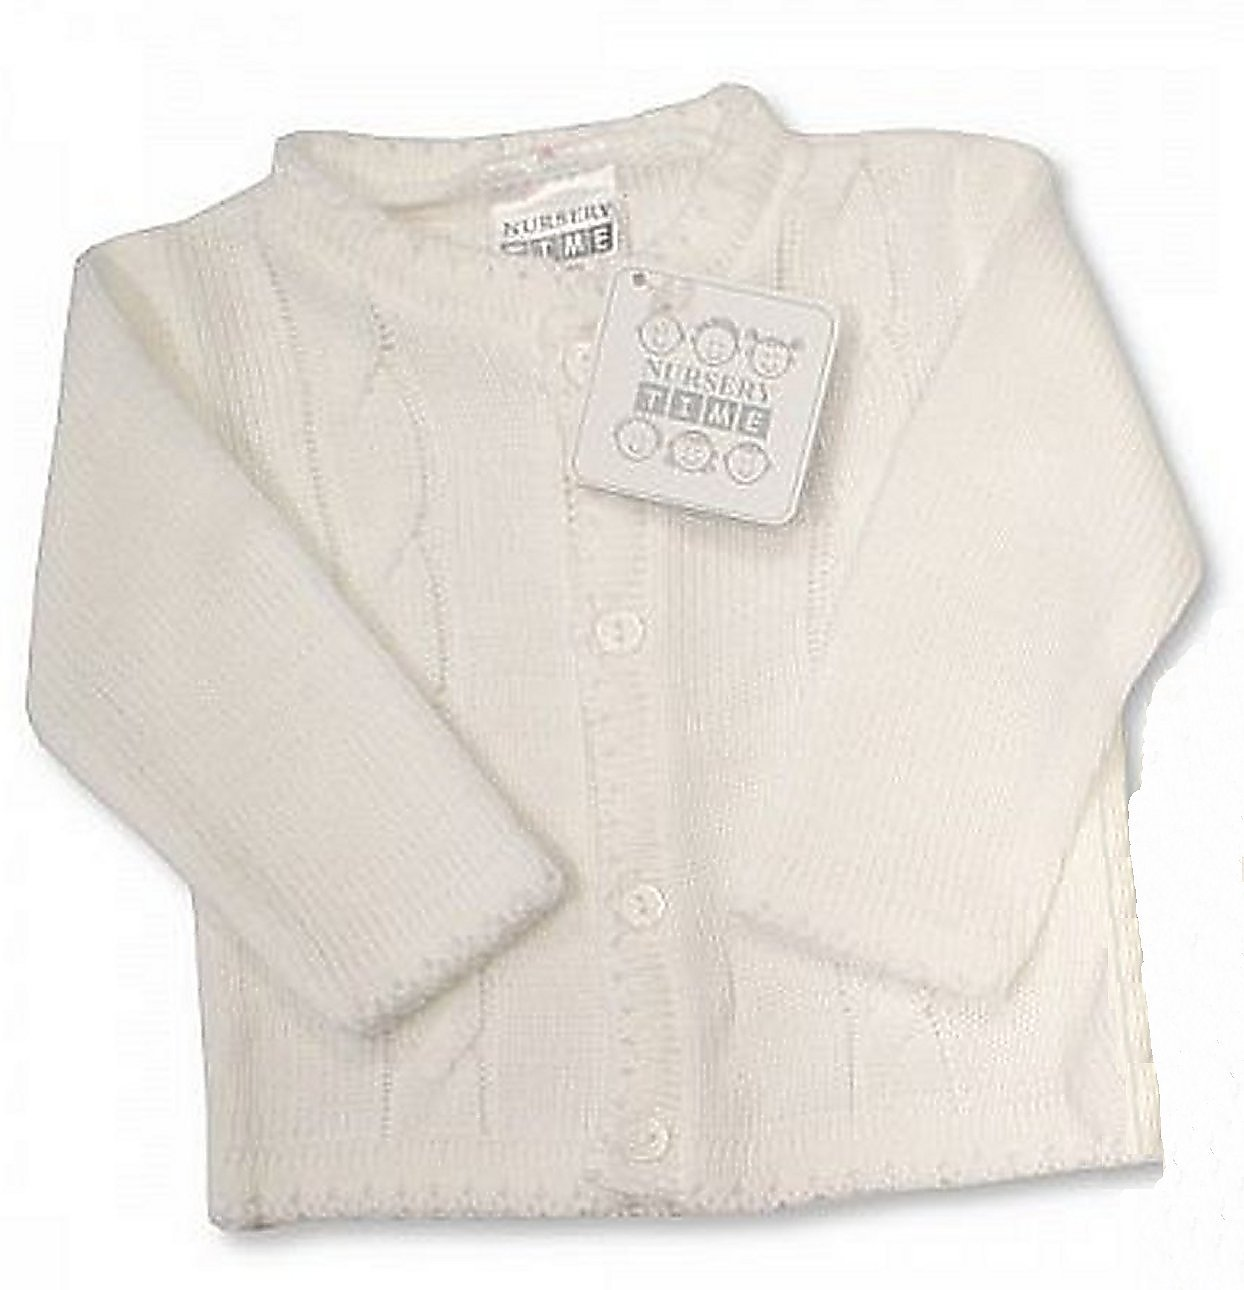 Baby Boy White Cable Knitted Christening Wedding Cardigan Jumper (0-3 Months) Nursery Time